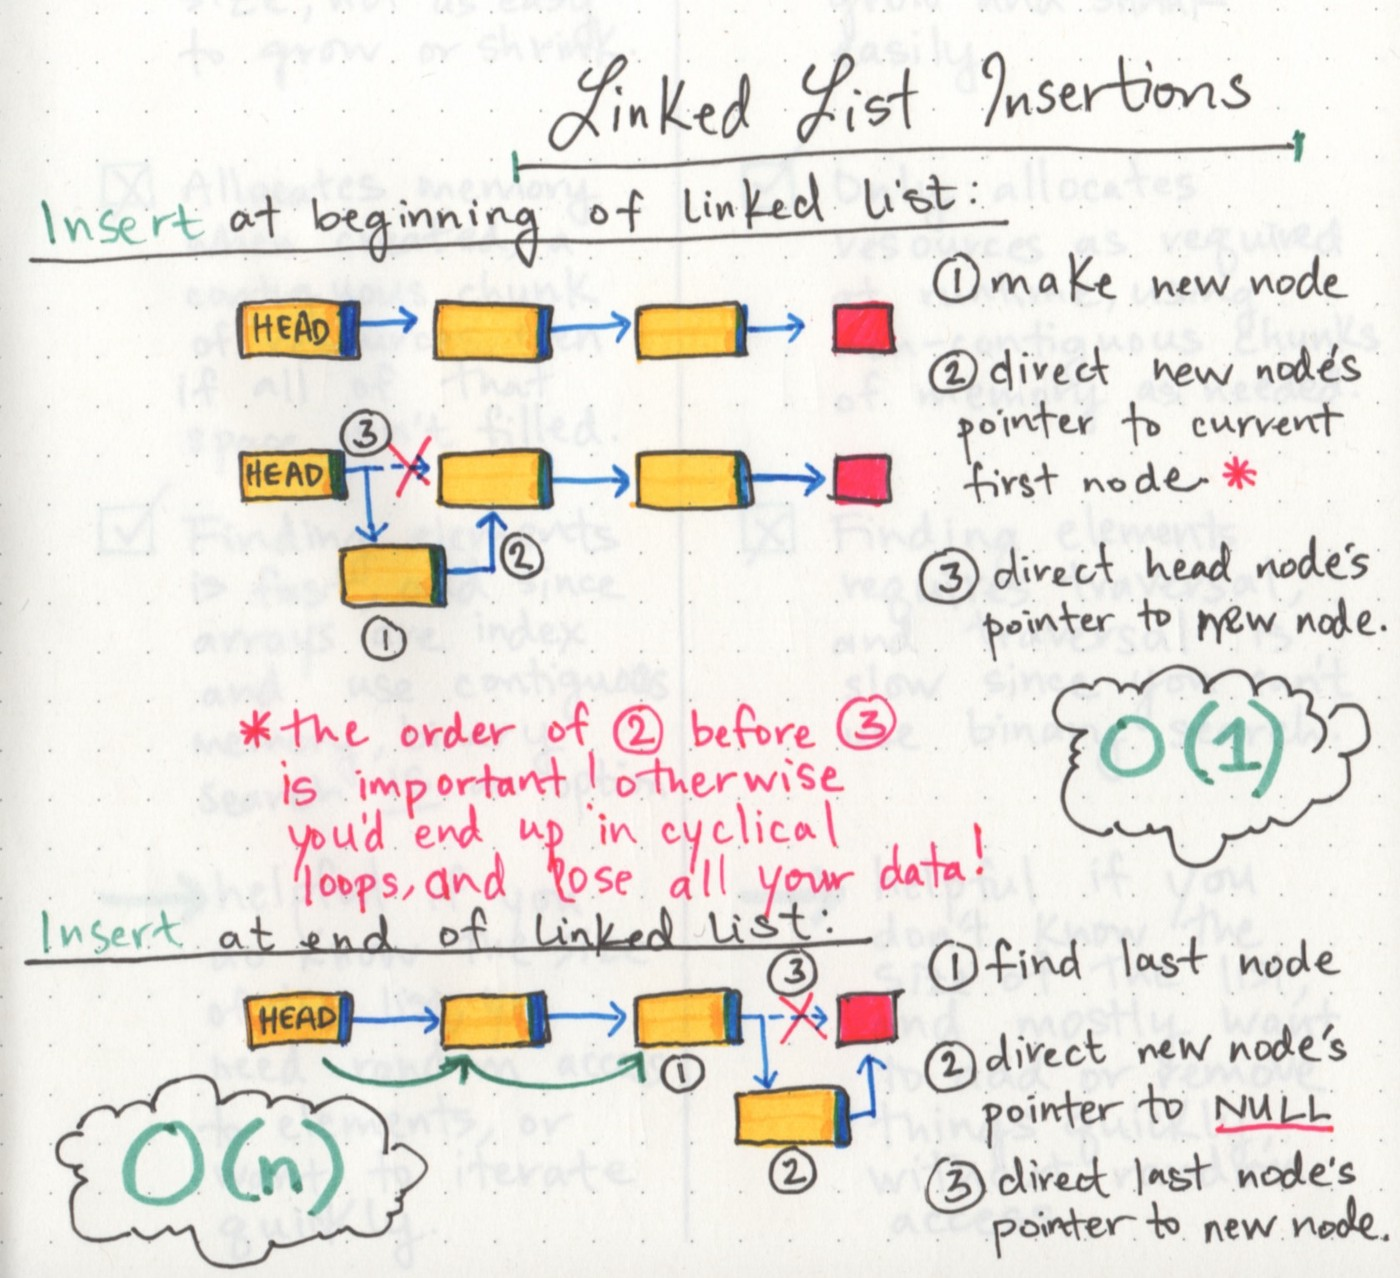 What's a Linked List, Anyway? [Part 2] - basecs - Medium